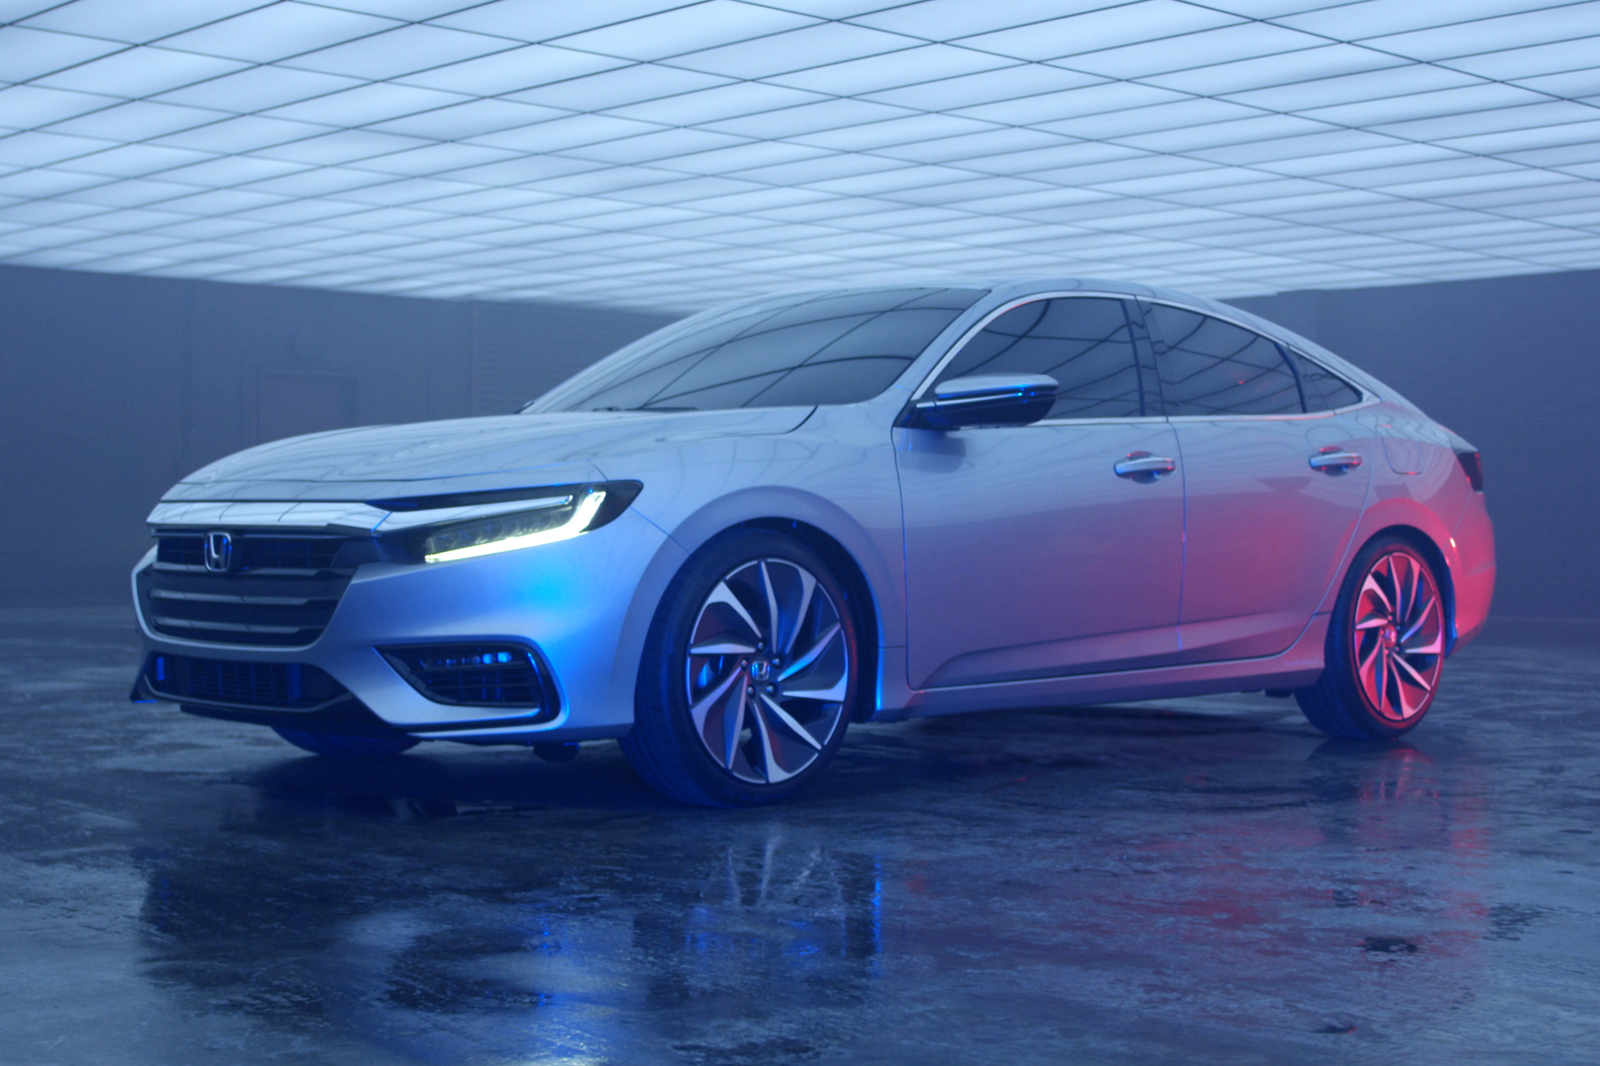 2019 Honda Insight Prototype 3